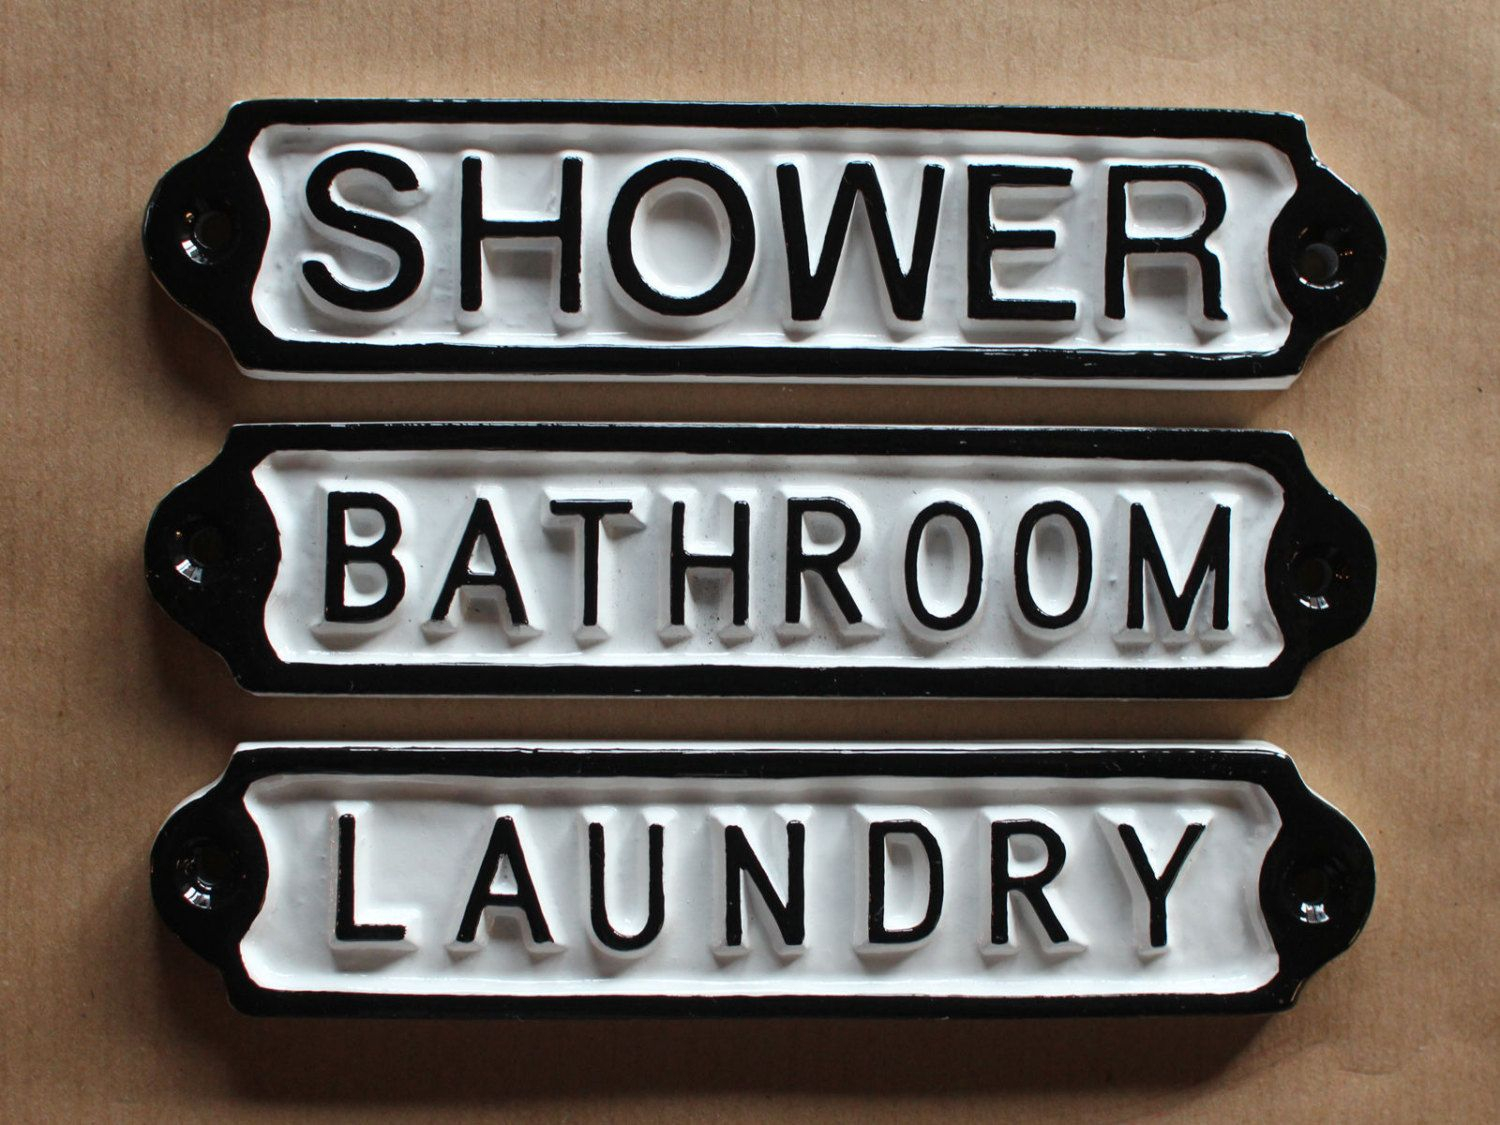 Antique Bathroom | Shower | Laundry Door Signs Shabby Chic Regarding Personalized Mint Distressed Vintage Look Laundry Metal Sign Wall Decor (View 14 of 30)